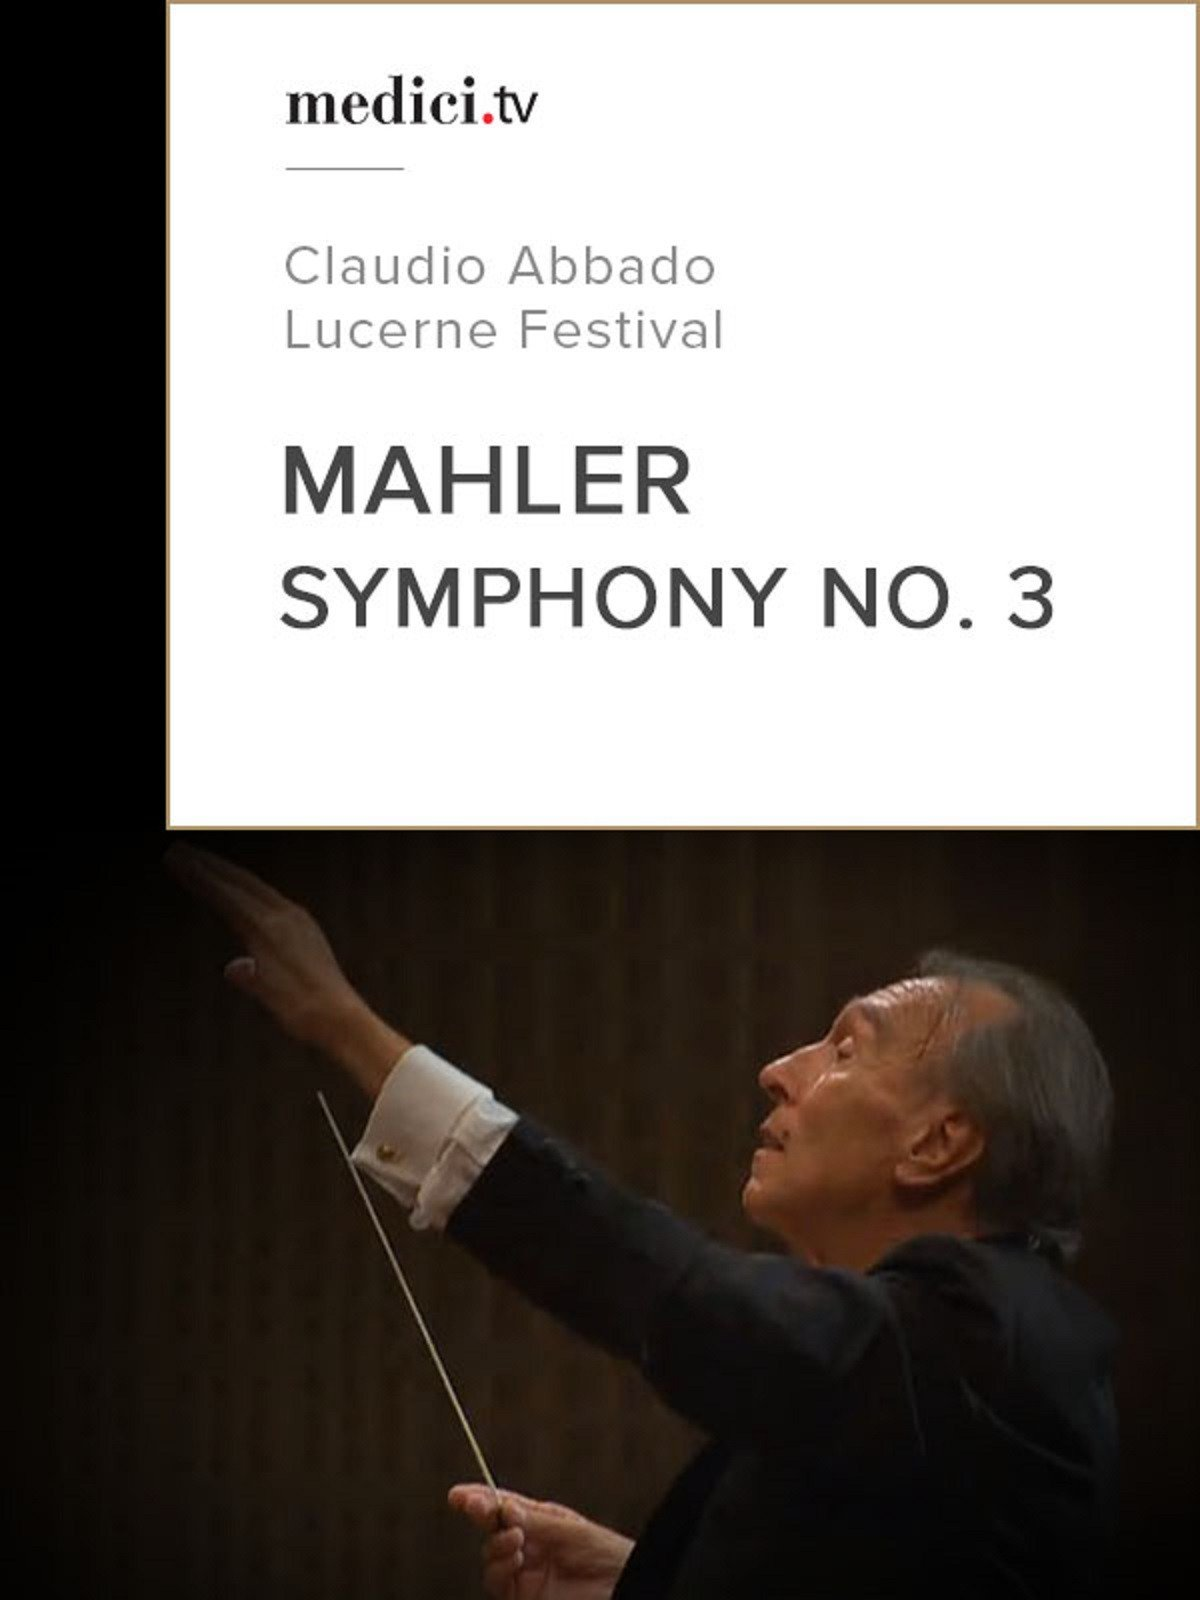 Mahler, Symphony No. 3 on Amazon Prime Video UK